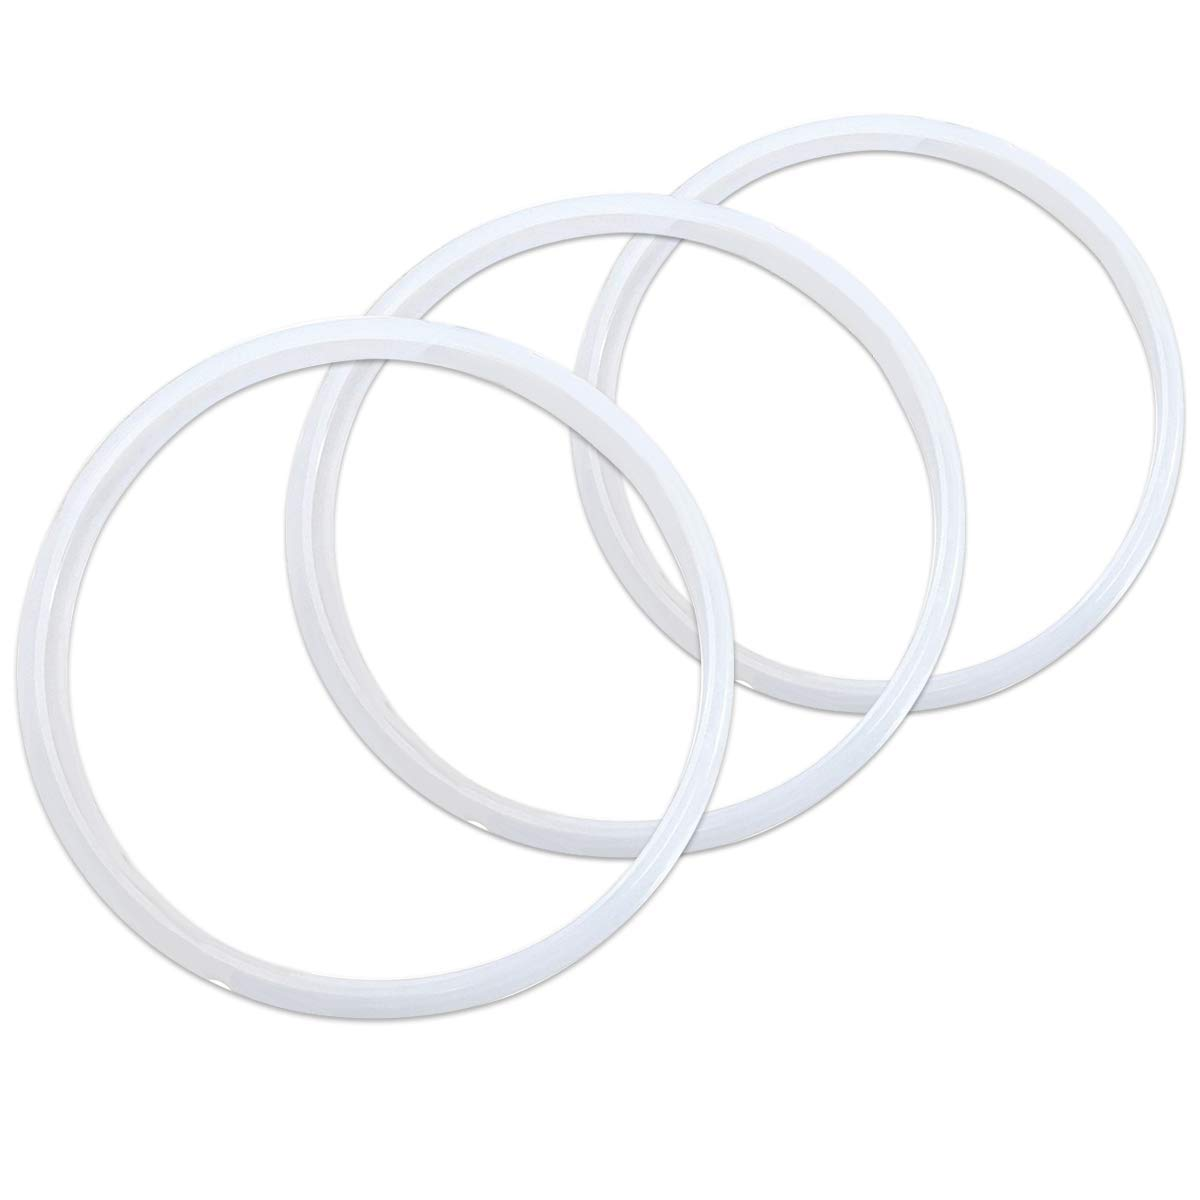 WERSEA 3 Pack Instant Pot 6 Quart Crock Pot Express Multi-Cooker Sealing Ring Gaskets- Clear Color